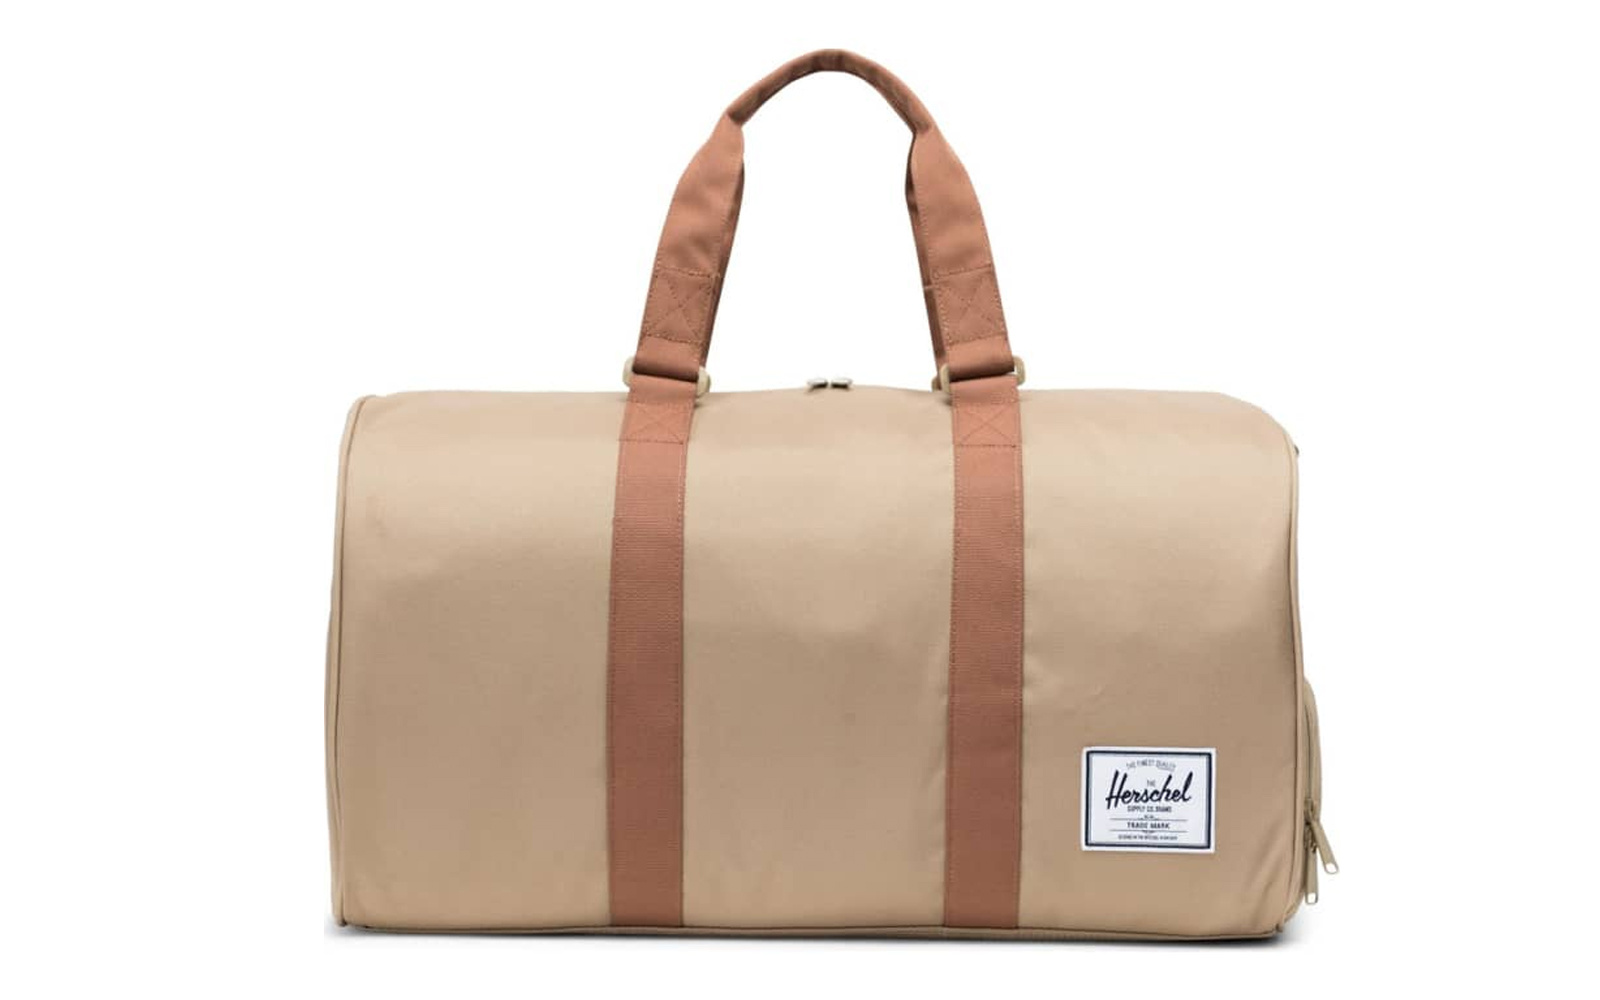 5c5c6dea4a Herschel Supply Co. Novel Duffel Bag. Nordstrom Sale